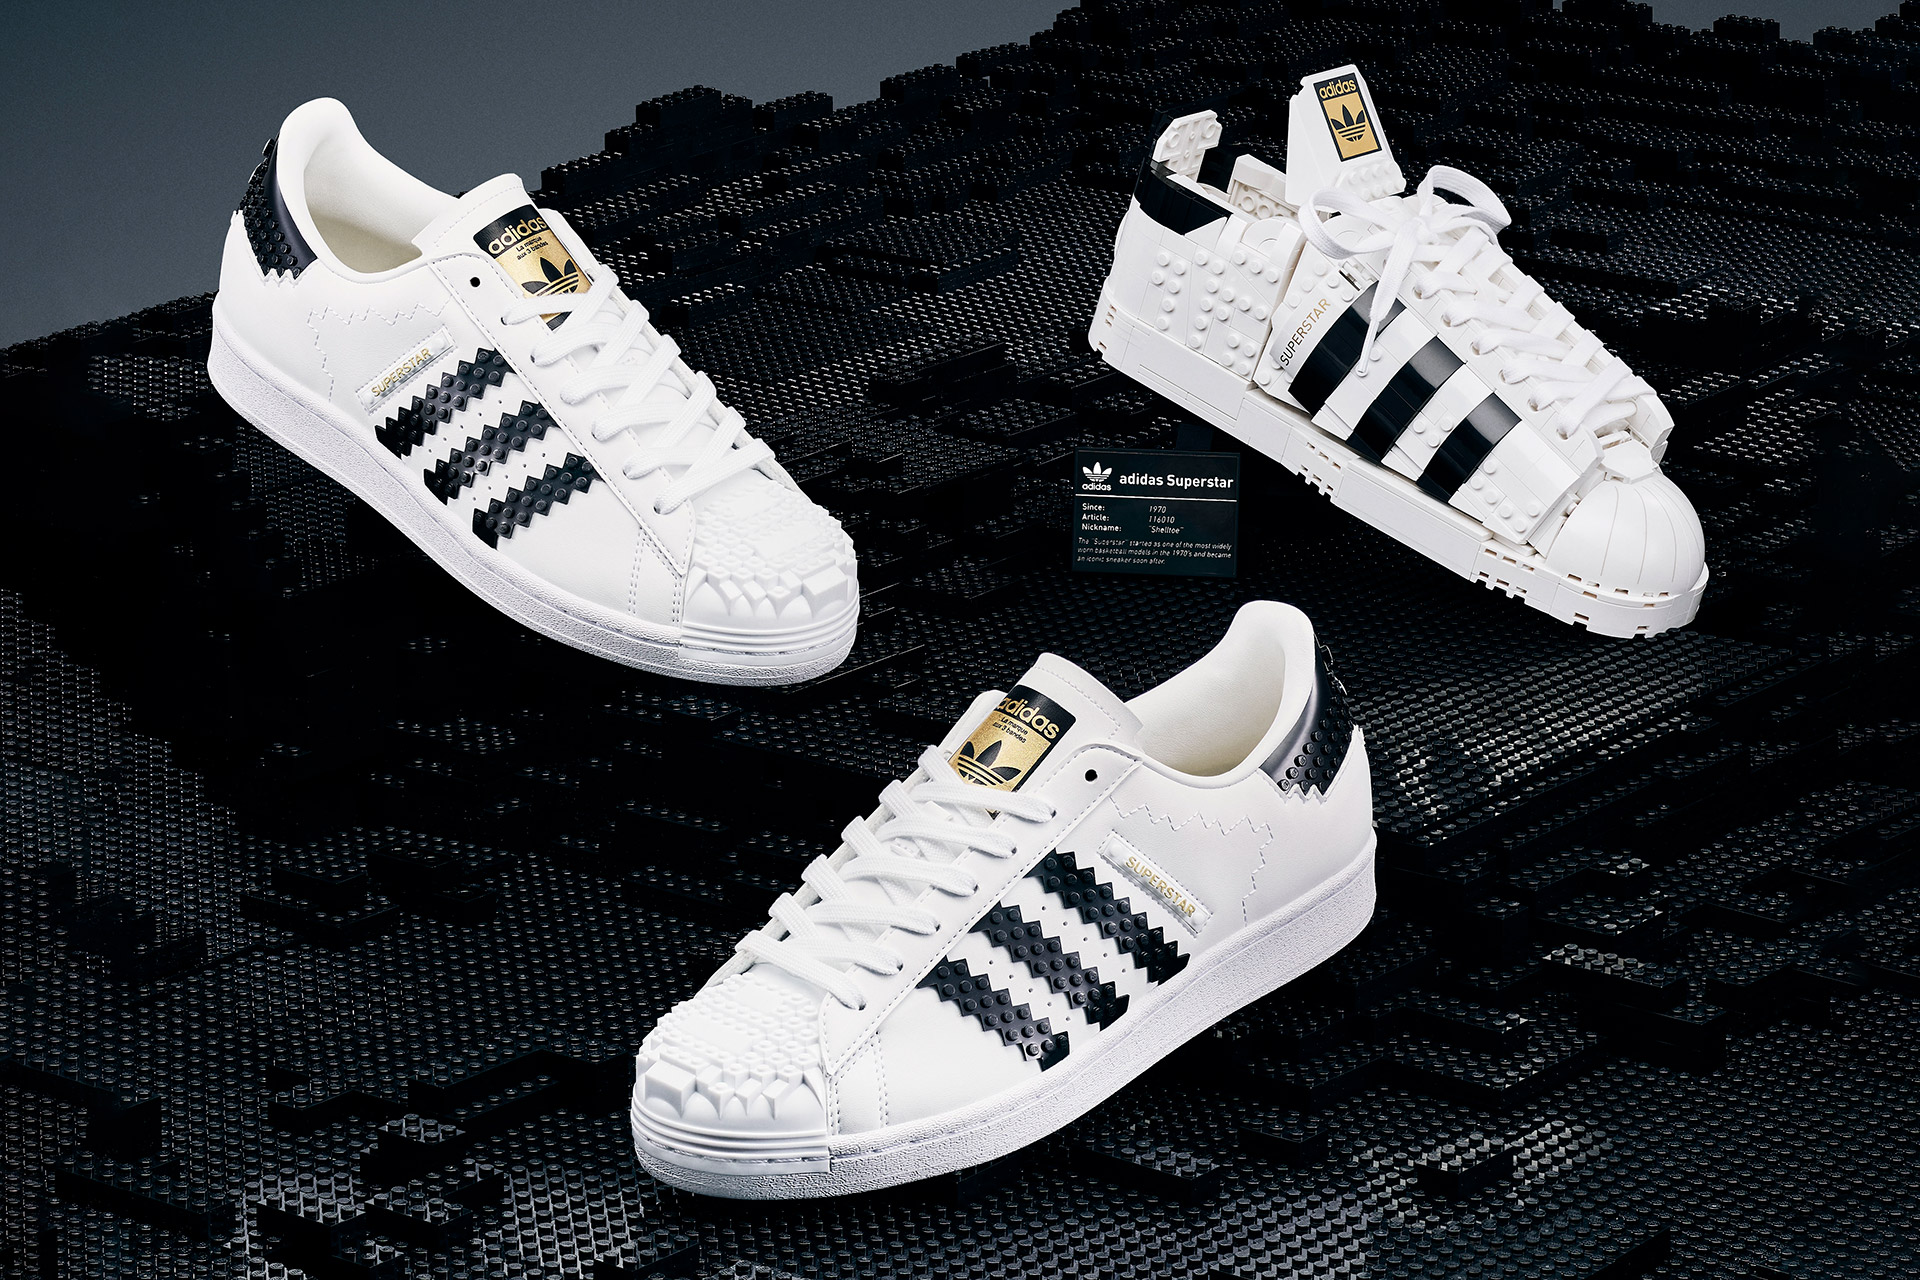 Collection Lego x Adidas Superstar   Uncrate